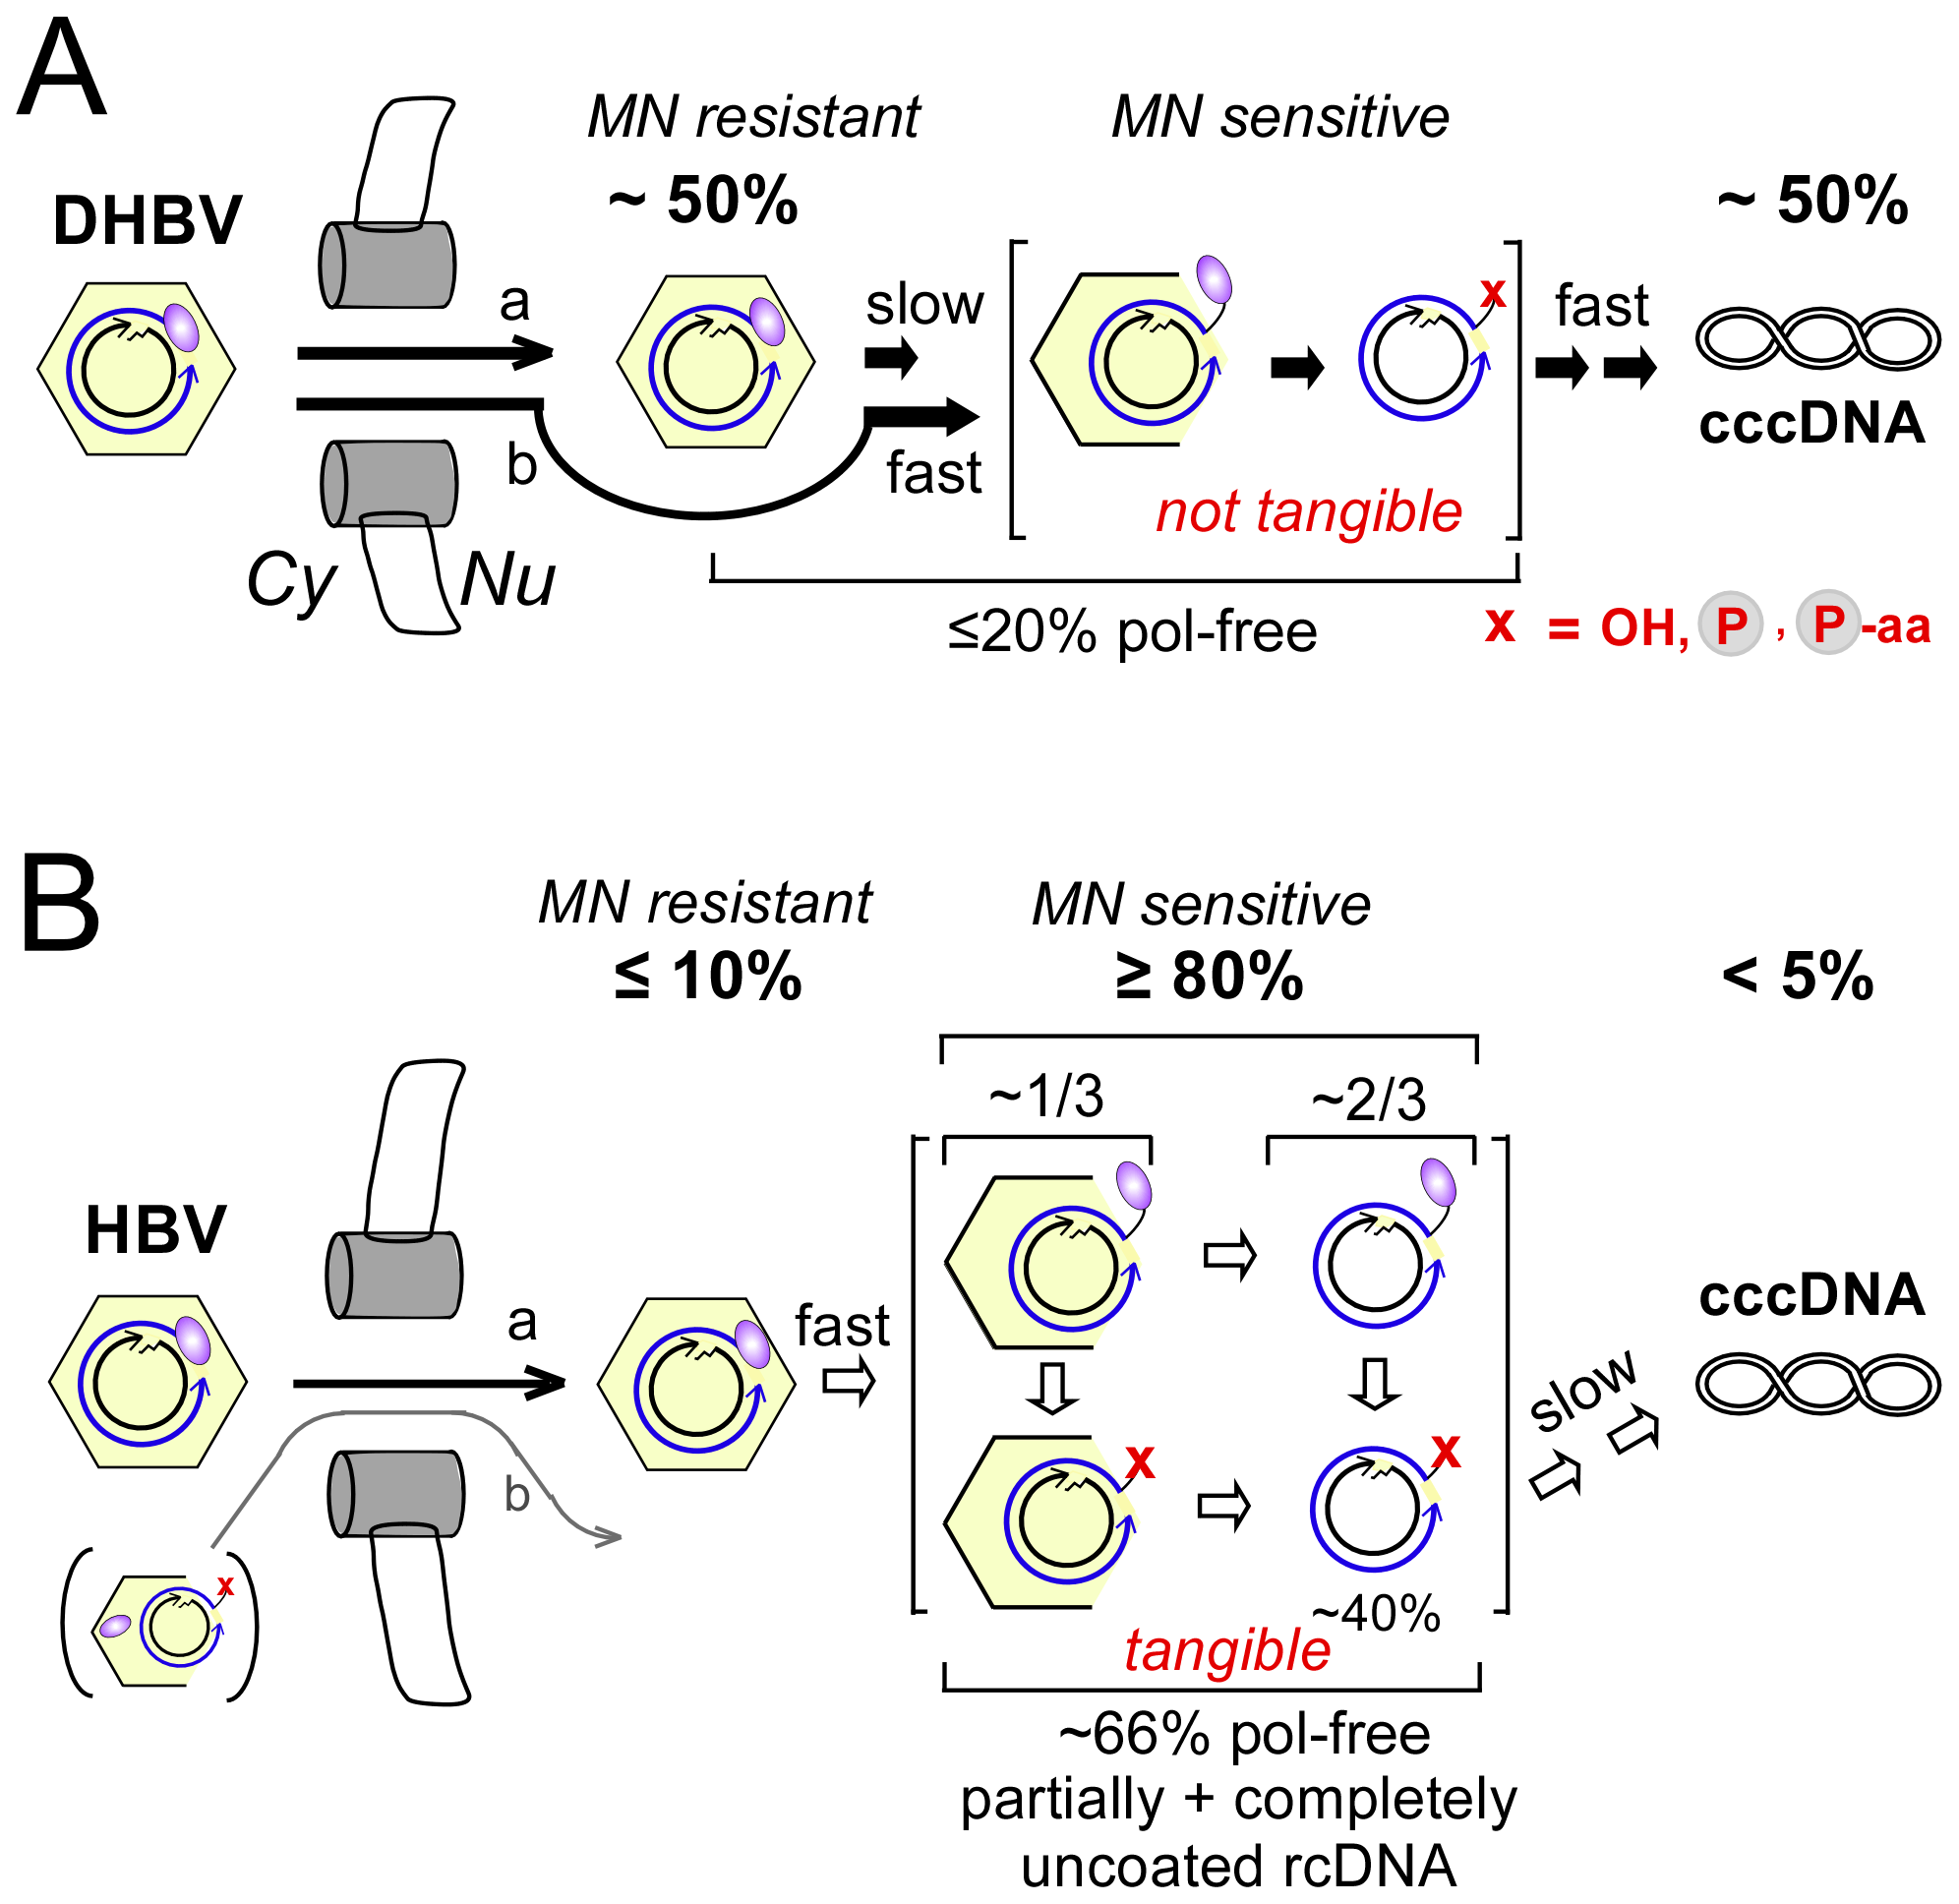 Virus-specific differences between DHBV and HBV cccDNA formation.